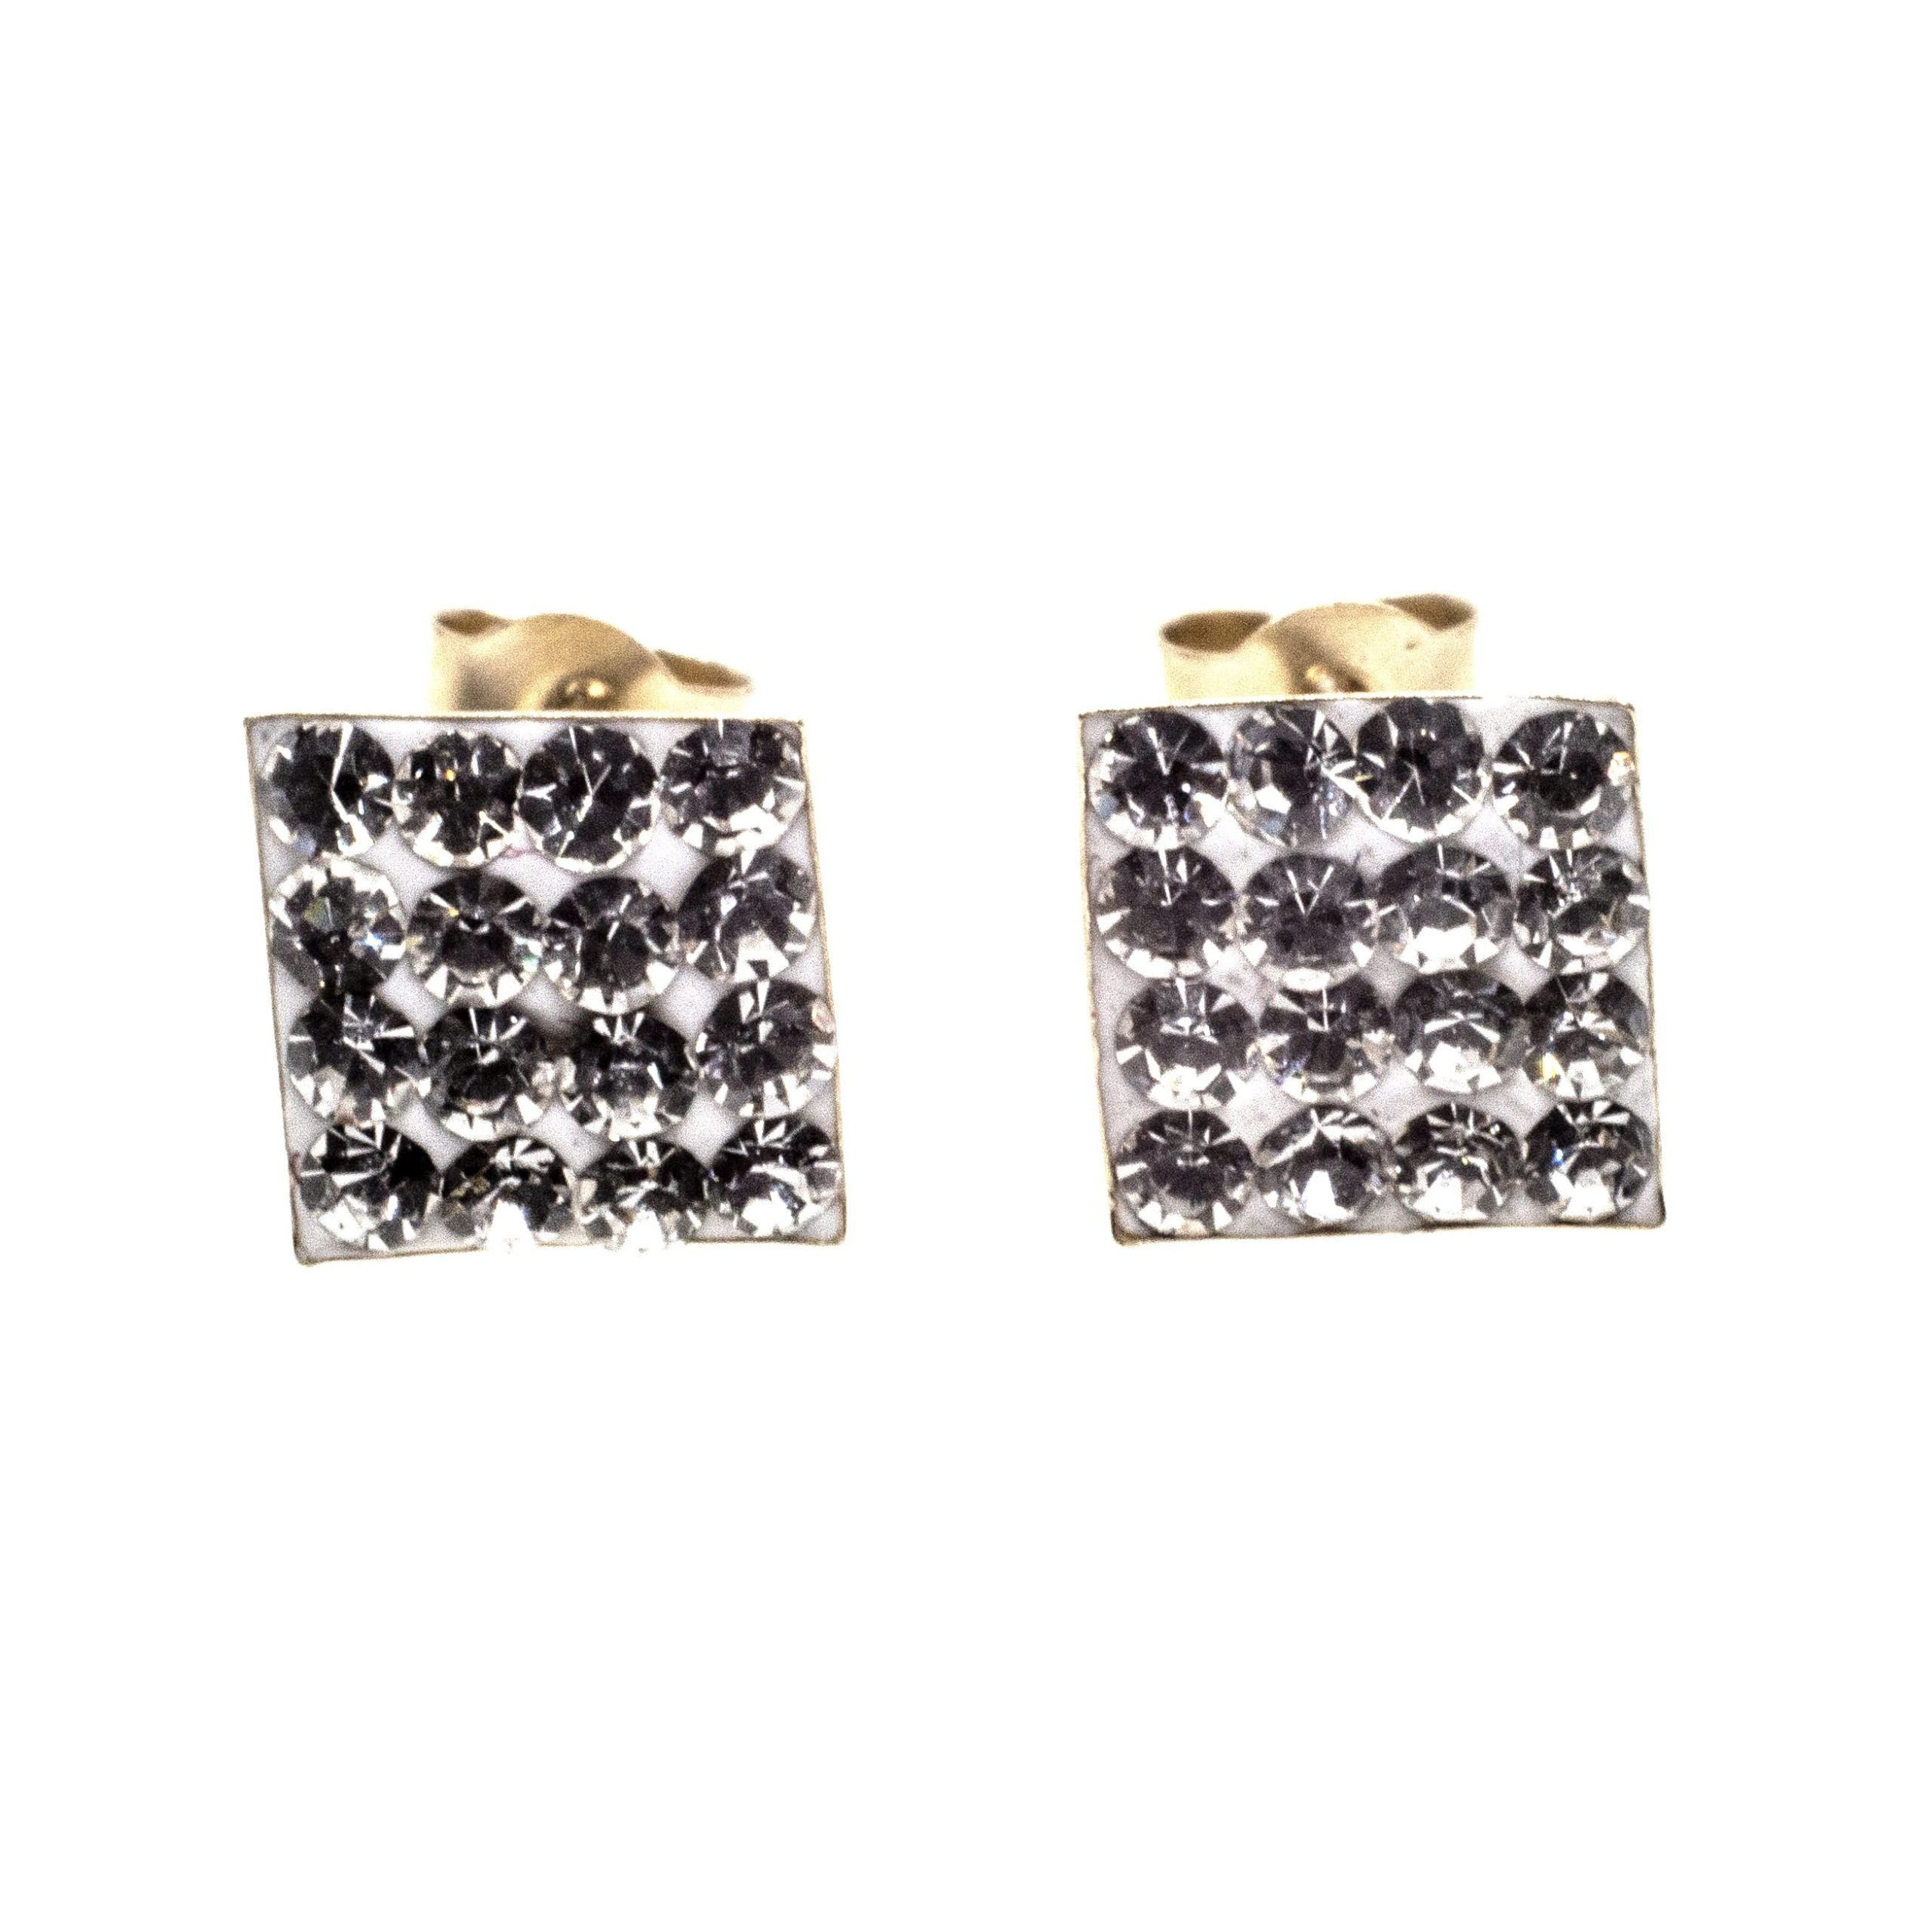 7mm square stud earring 9ct gold with Austrian crystal gems alt 4